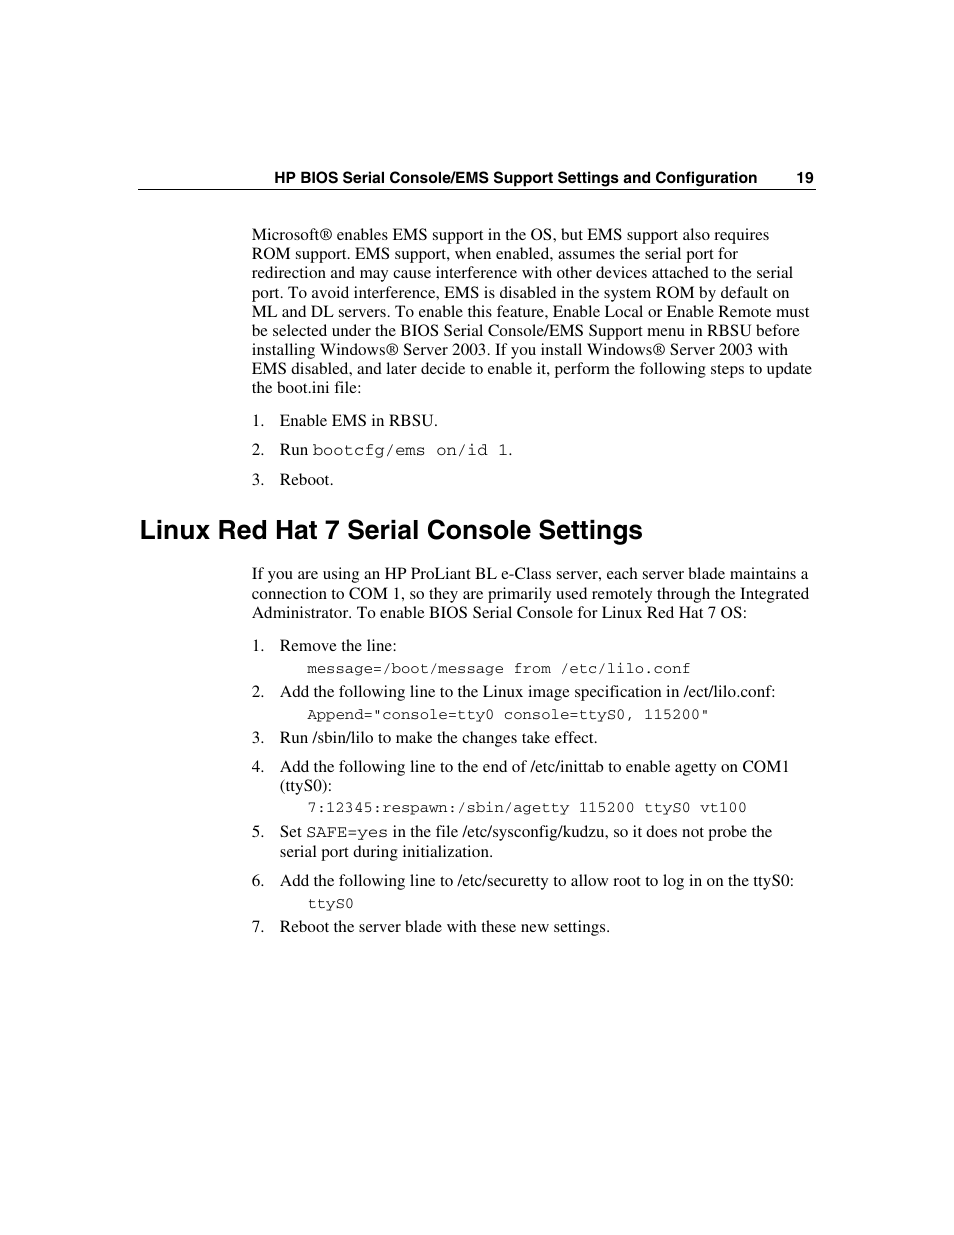 Linux red hat 7 serial console settings | HP ProLiant xw460c